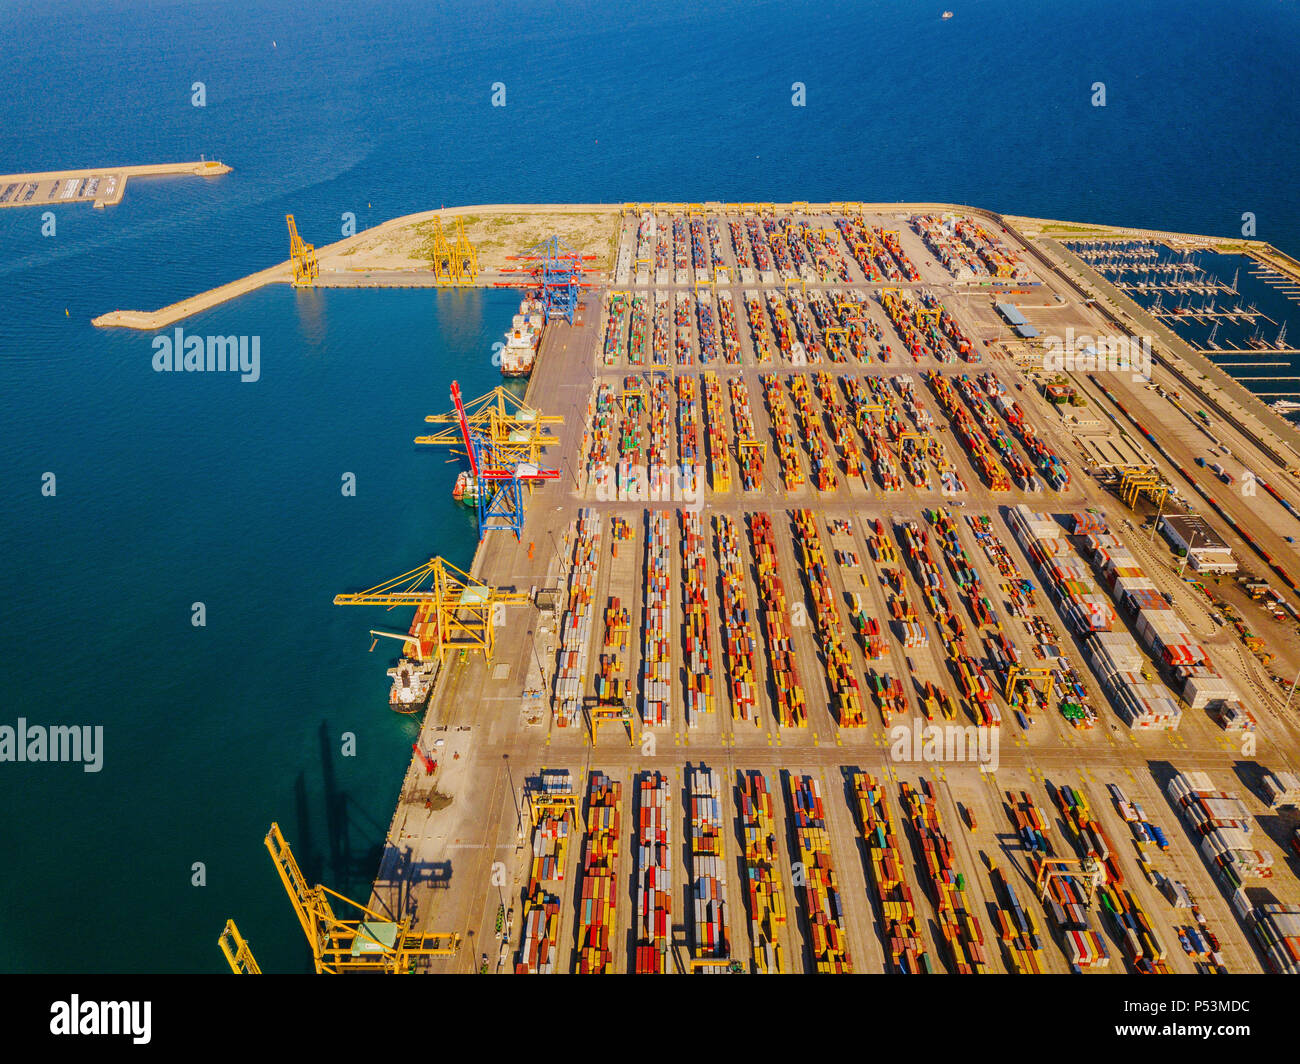 Aerial view of the commercial port of Valencia. Container terminal and ship during loading - Stock Image